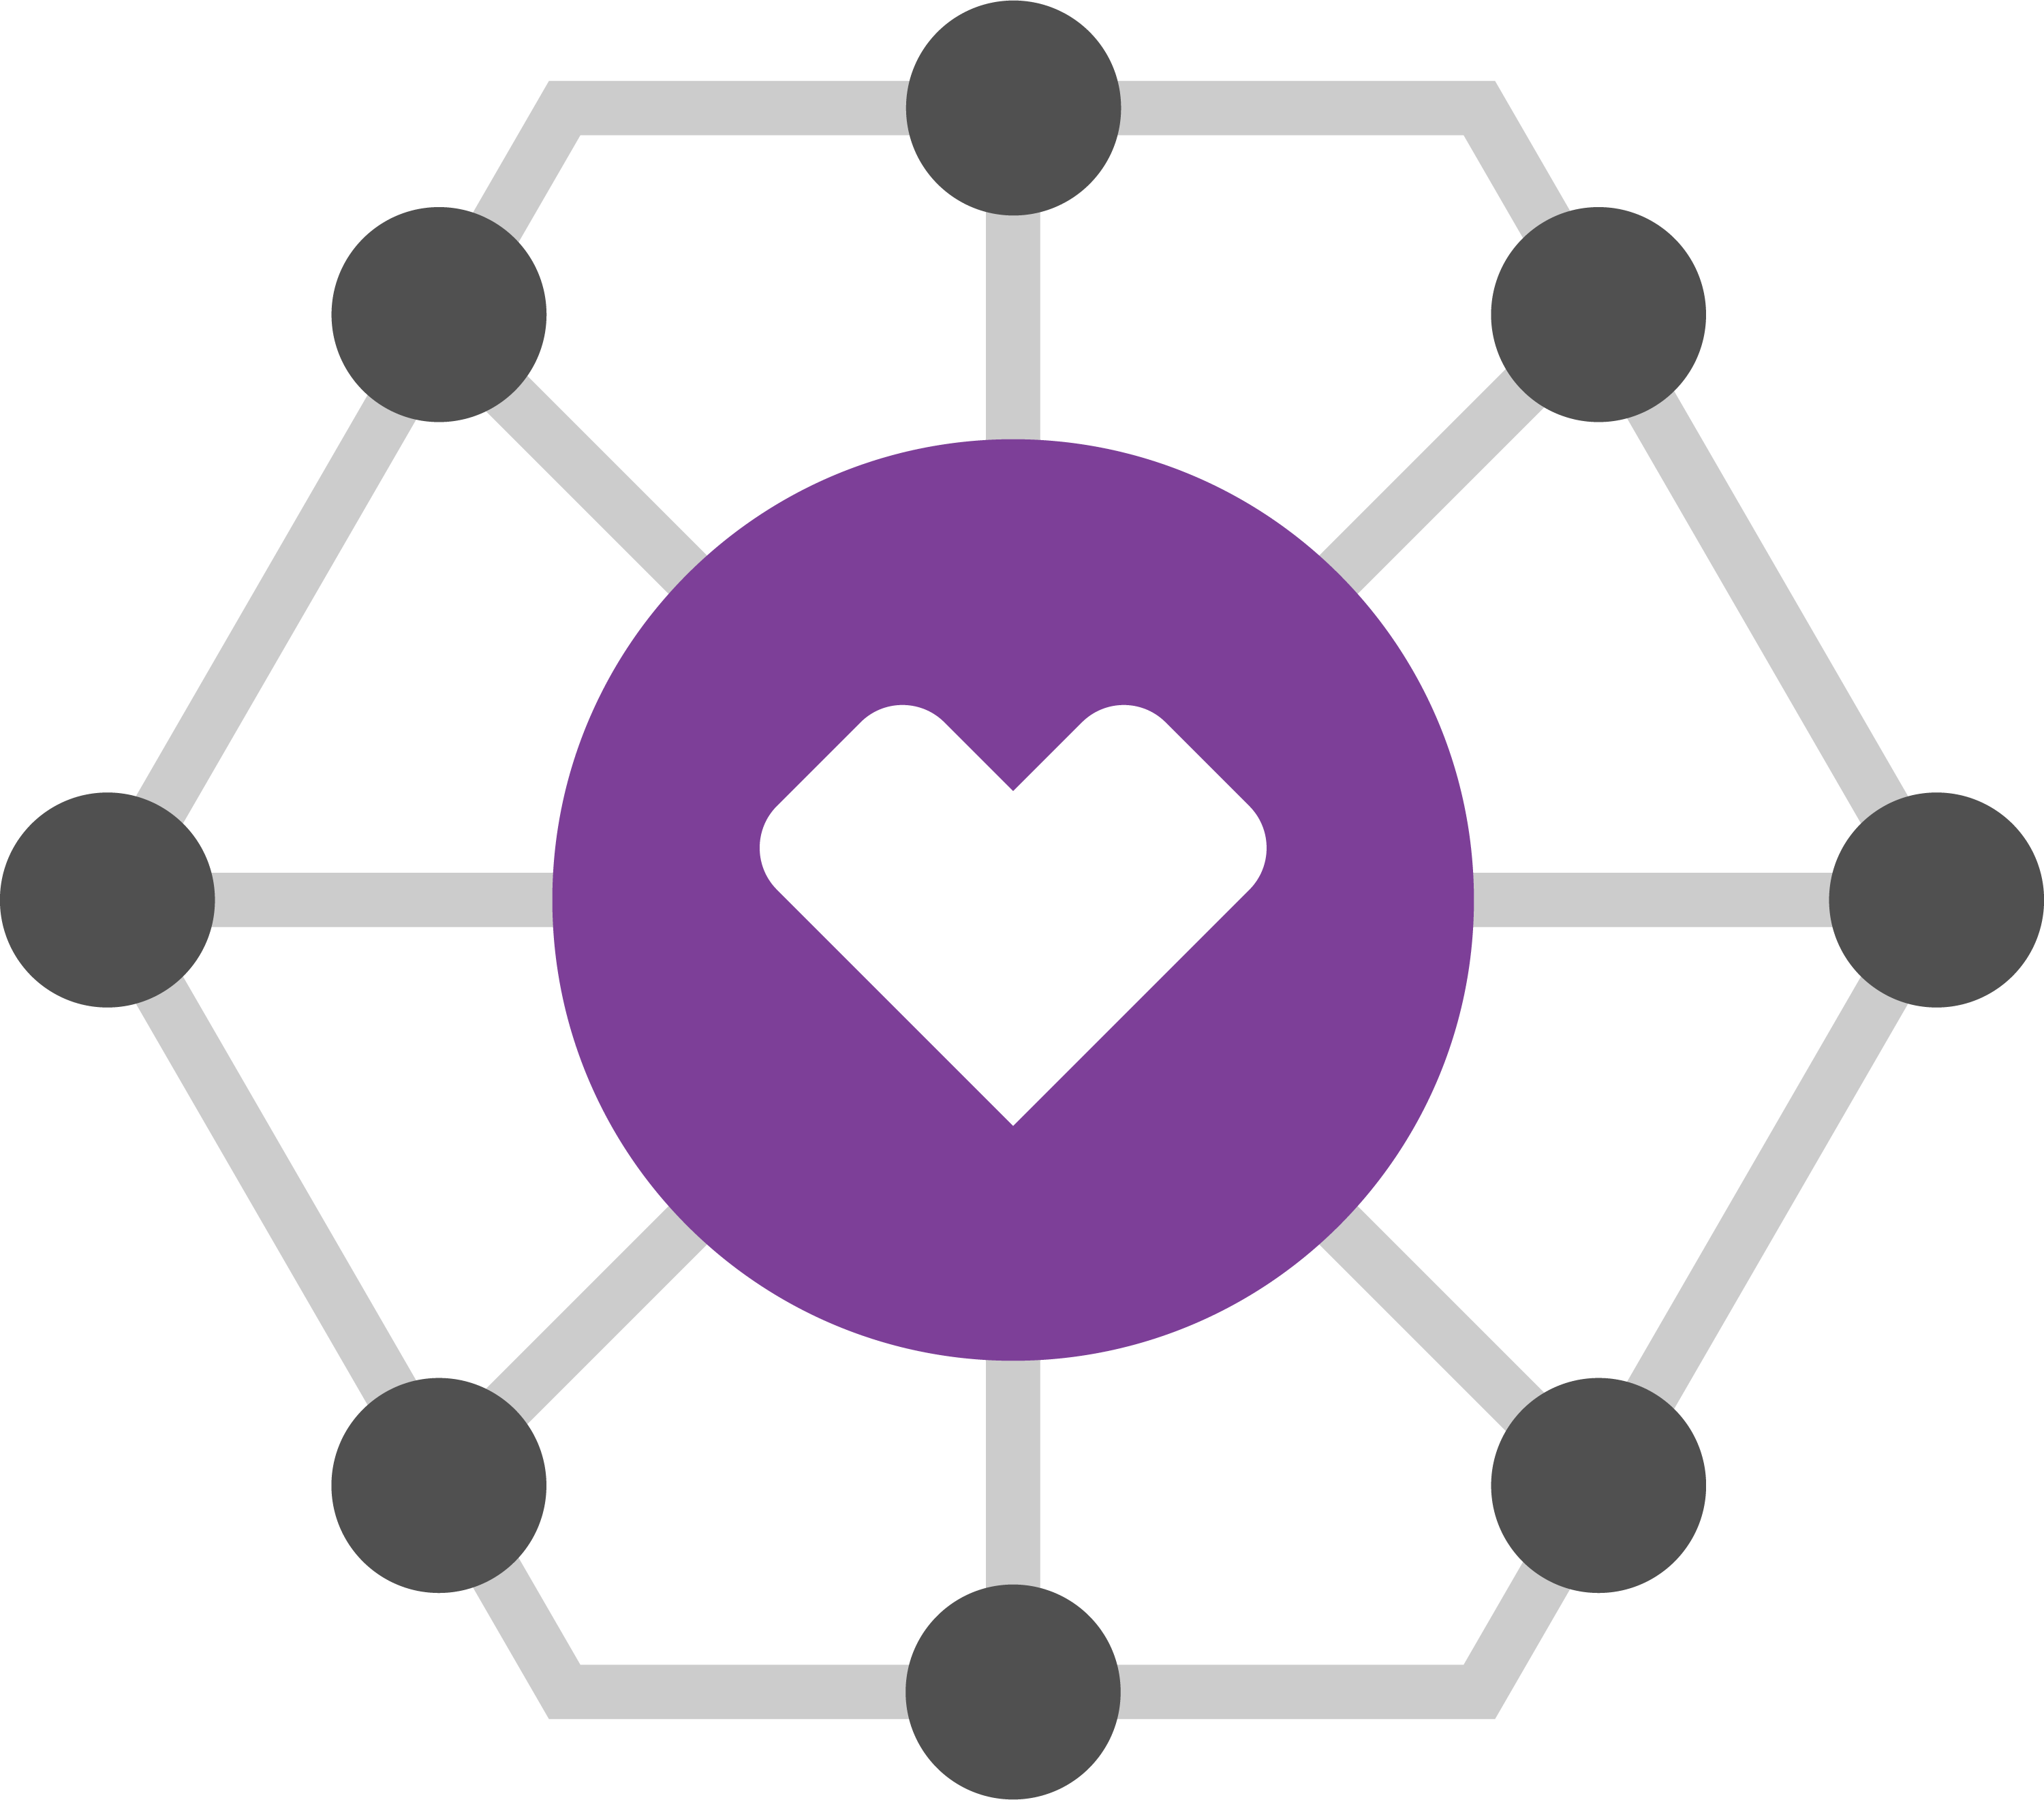 Aetna connectivity pictogram